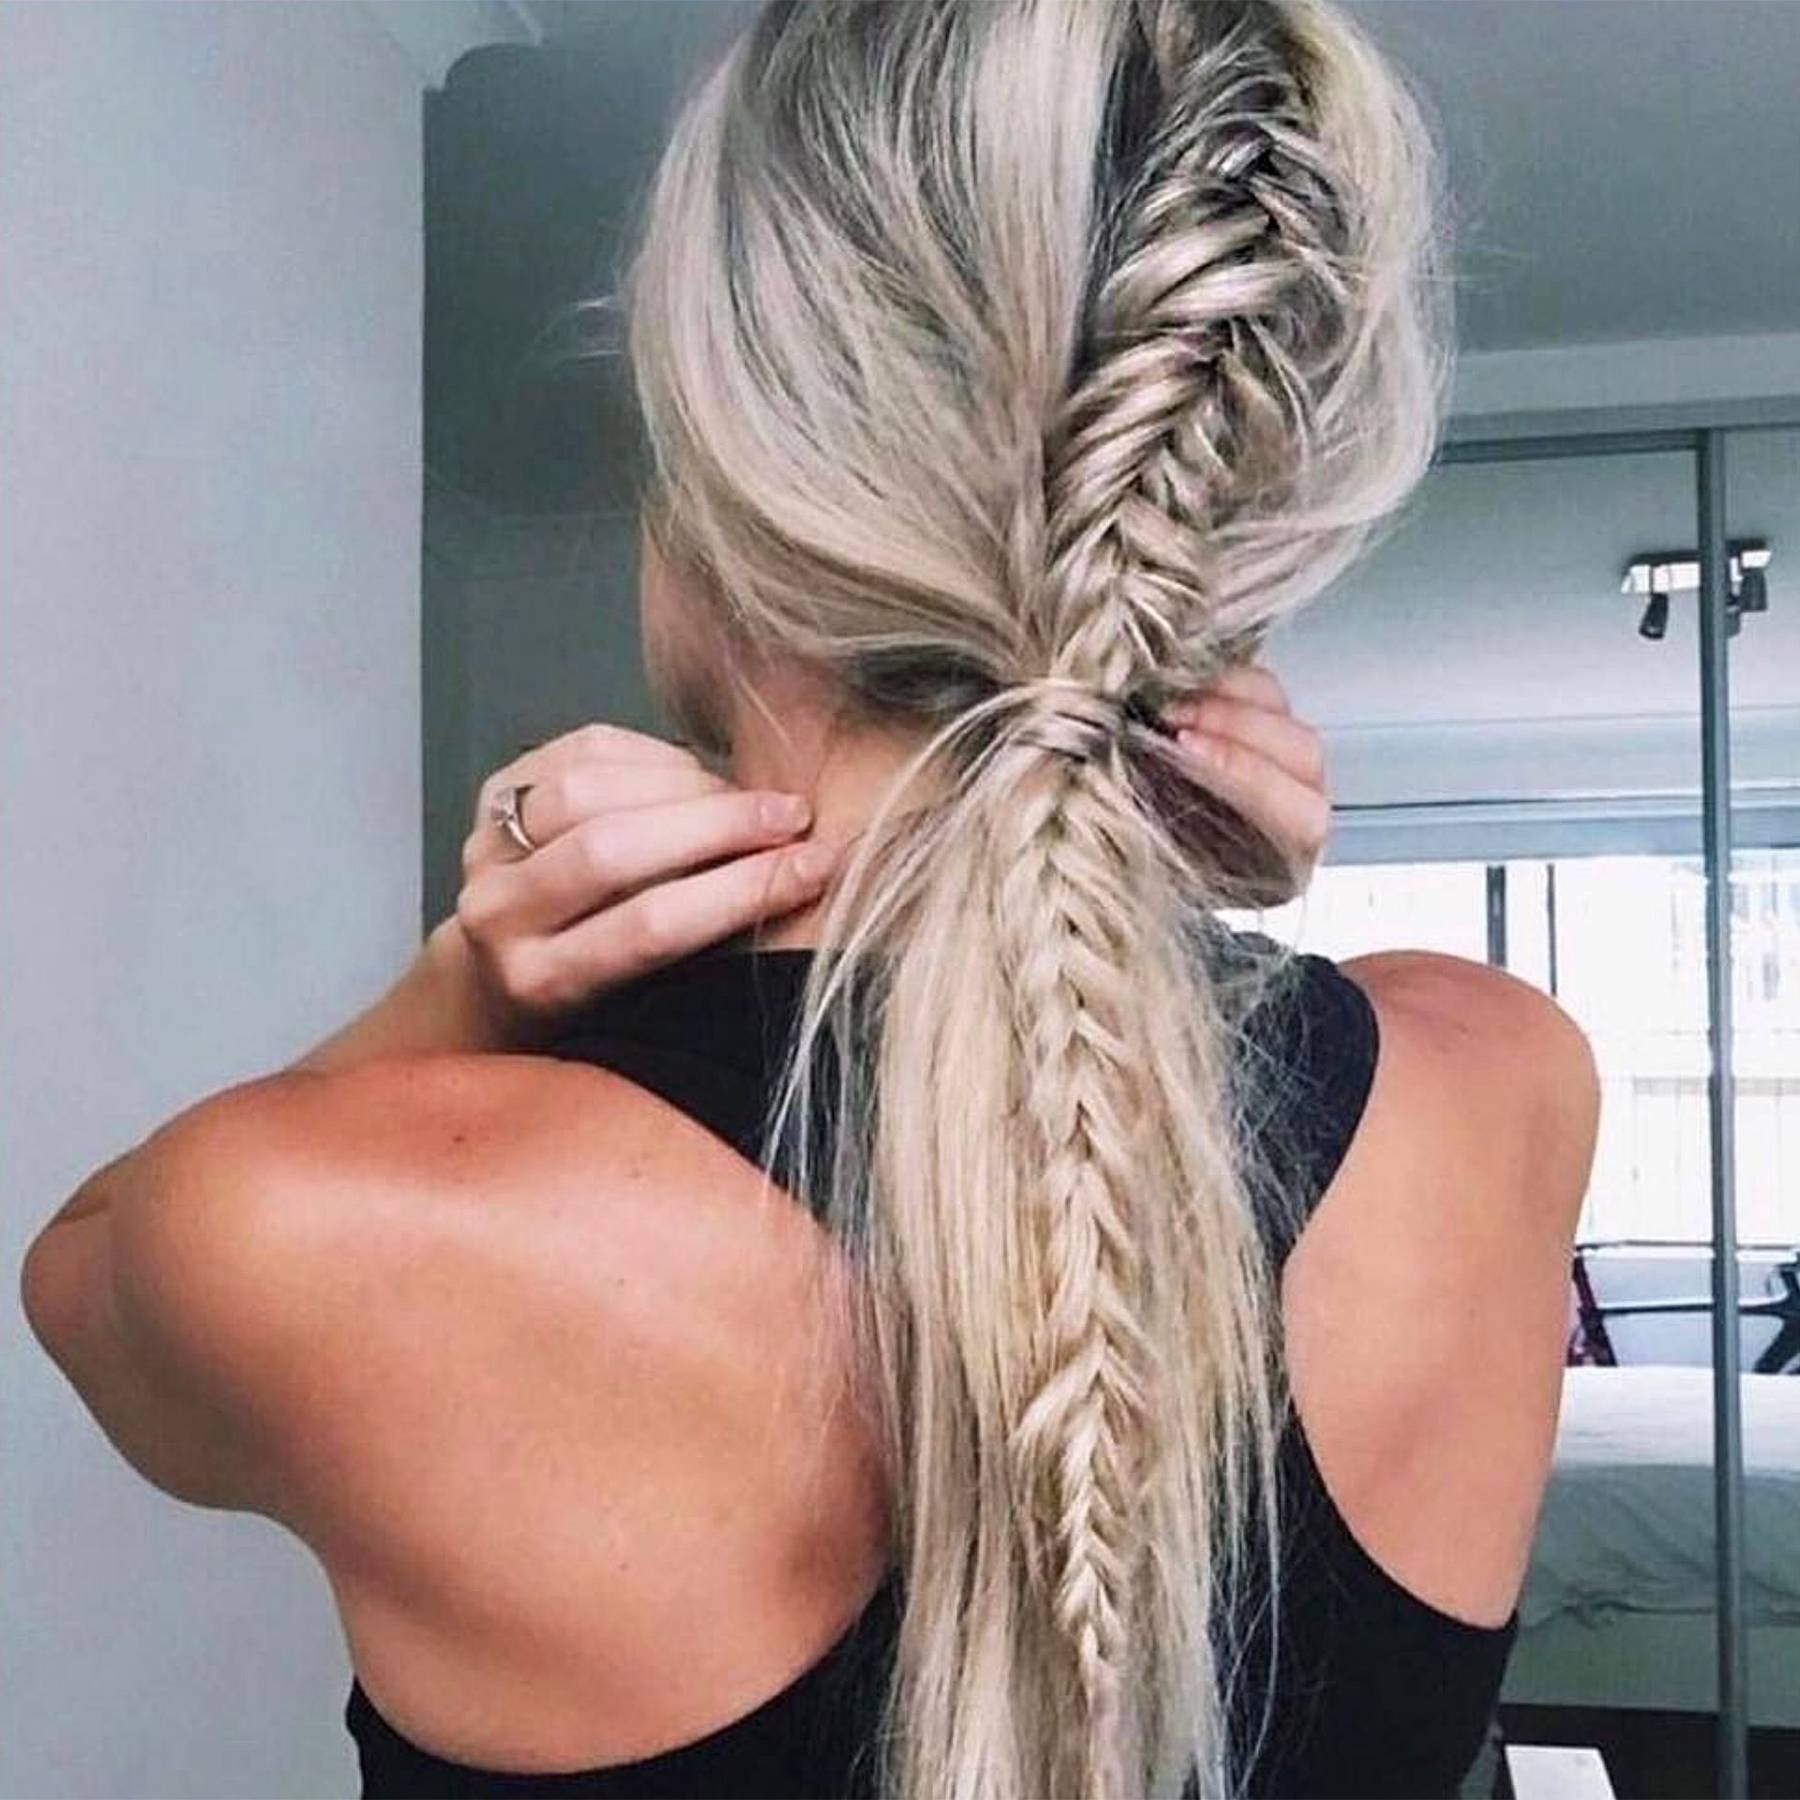 Festival Hairstyle Ideas 2018: Braids, Curls and Colours | Glamour UK